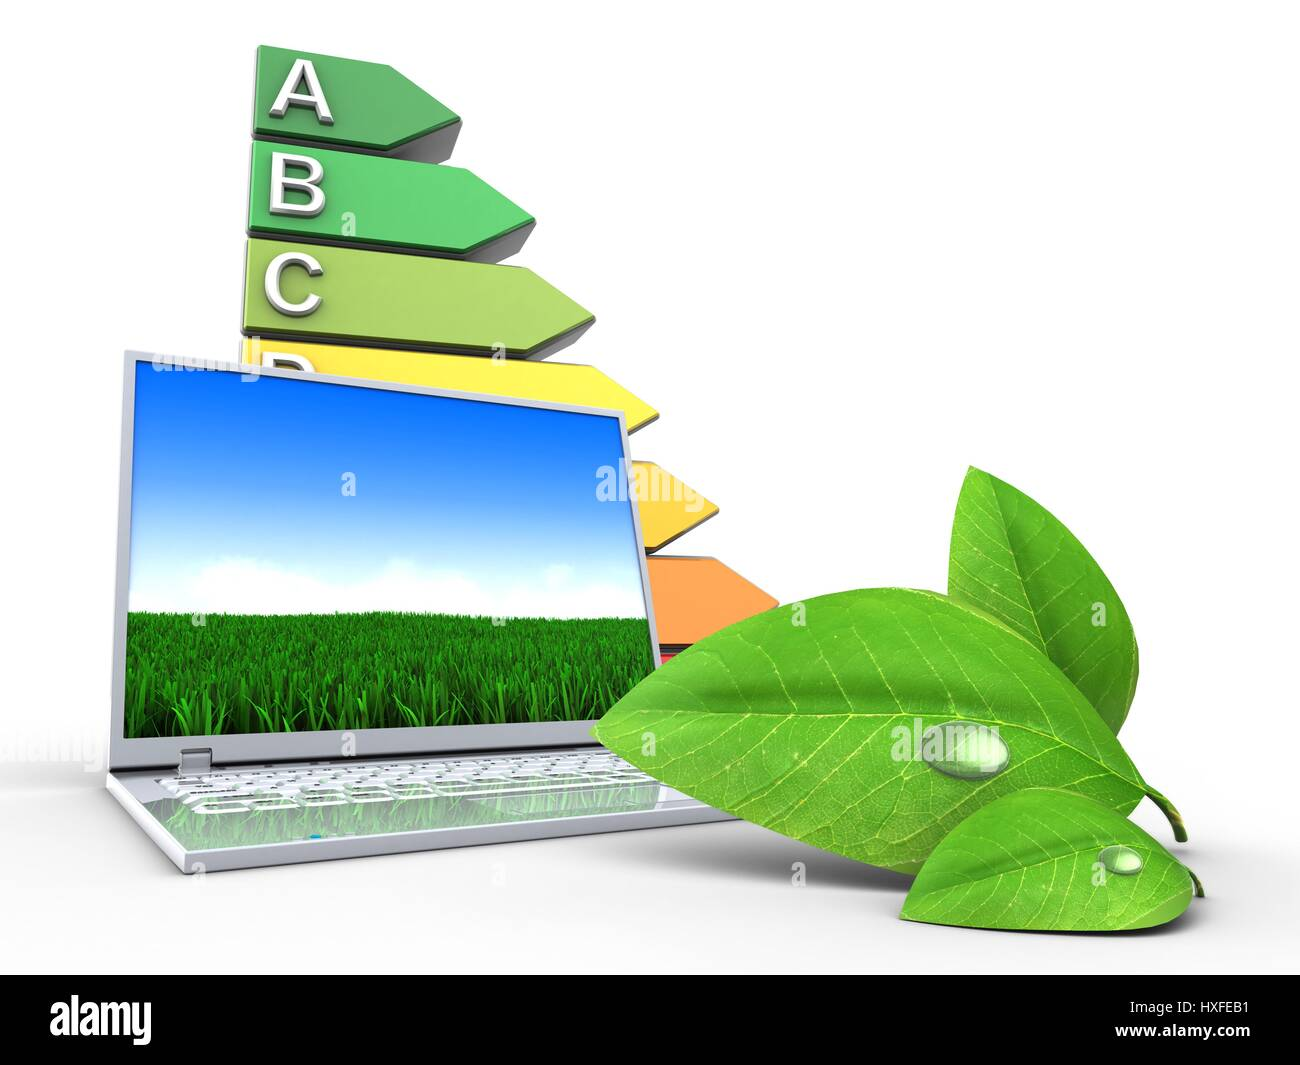 3d illustration of laptop computer over white background with efficient ranks and leaf - Stock Image